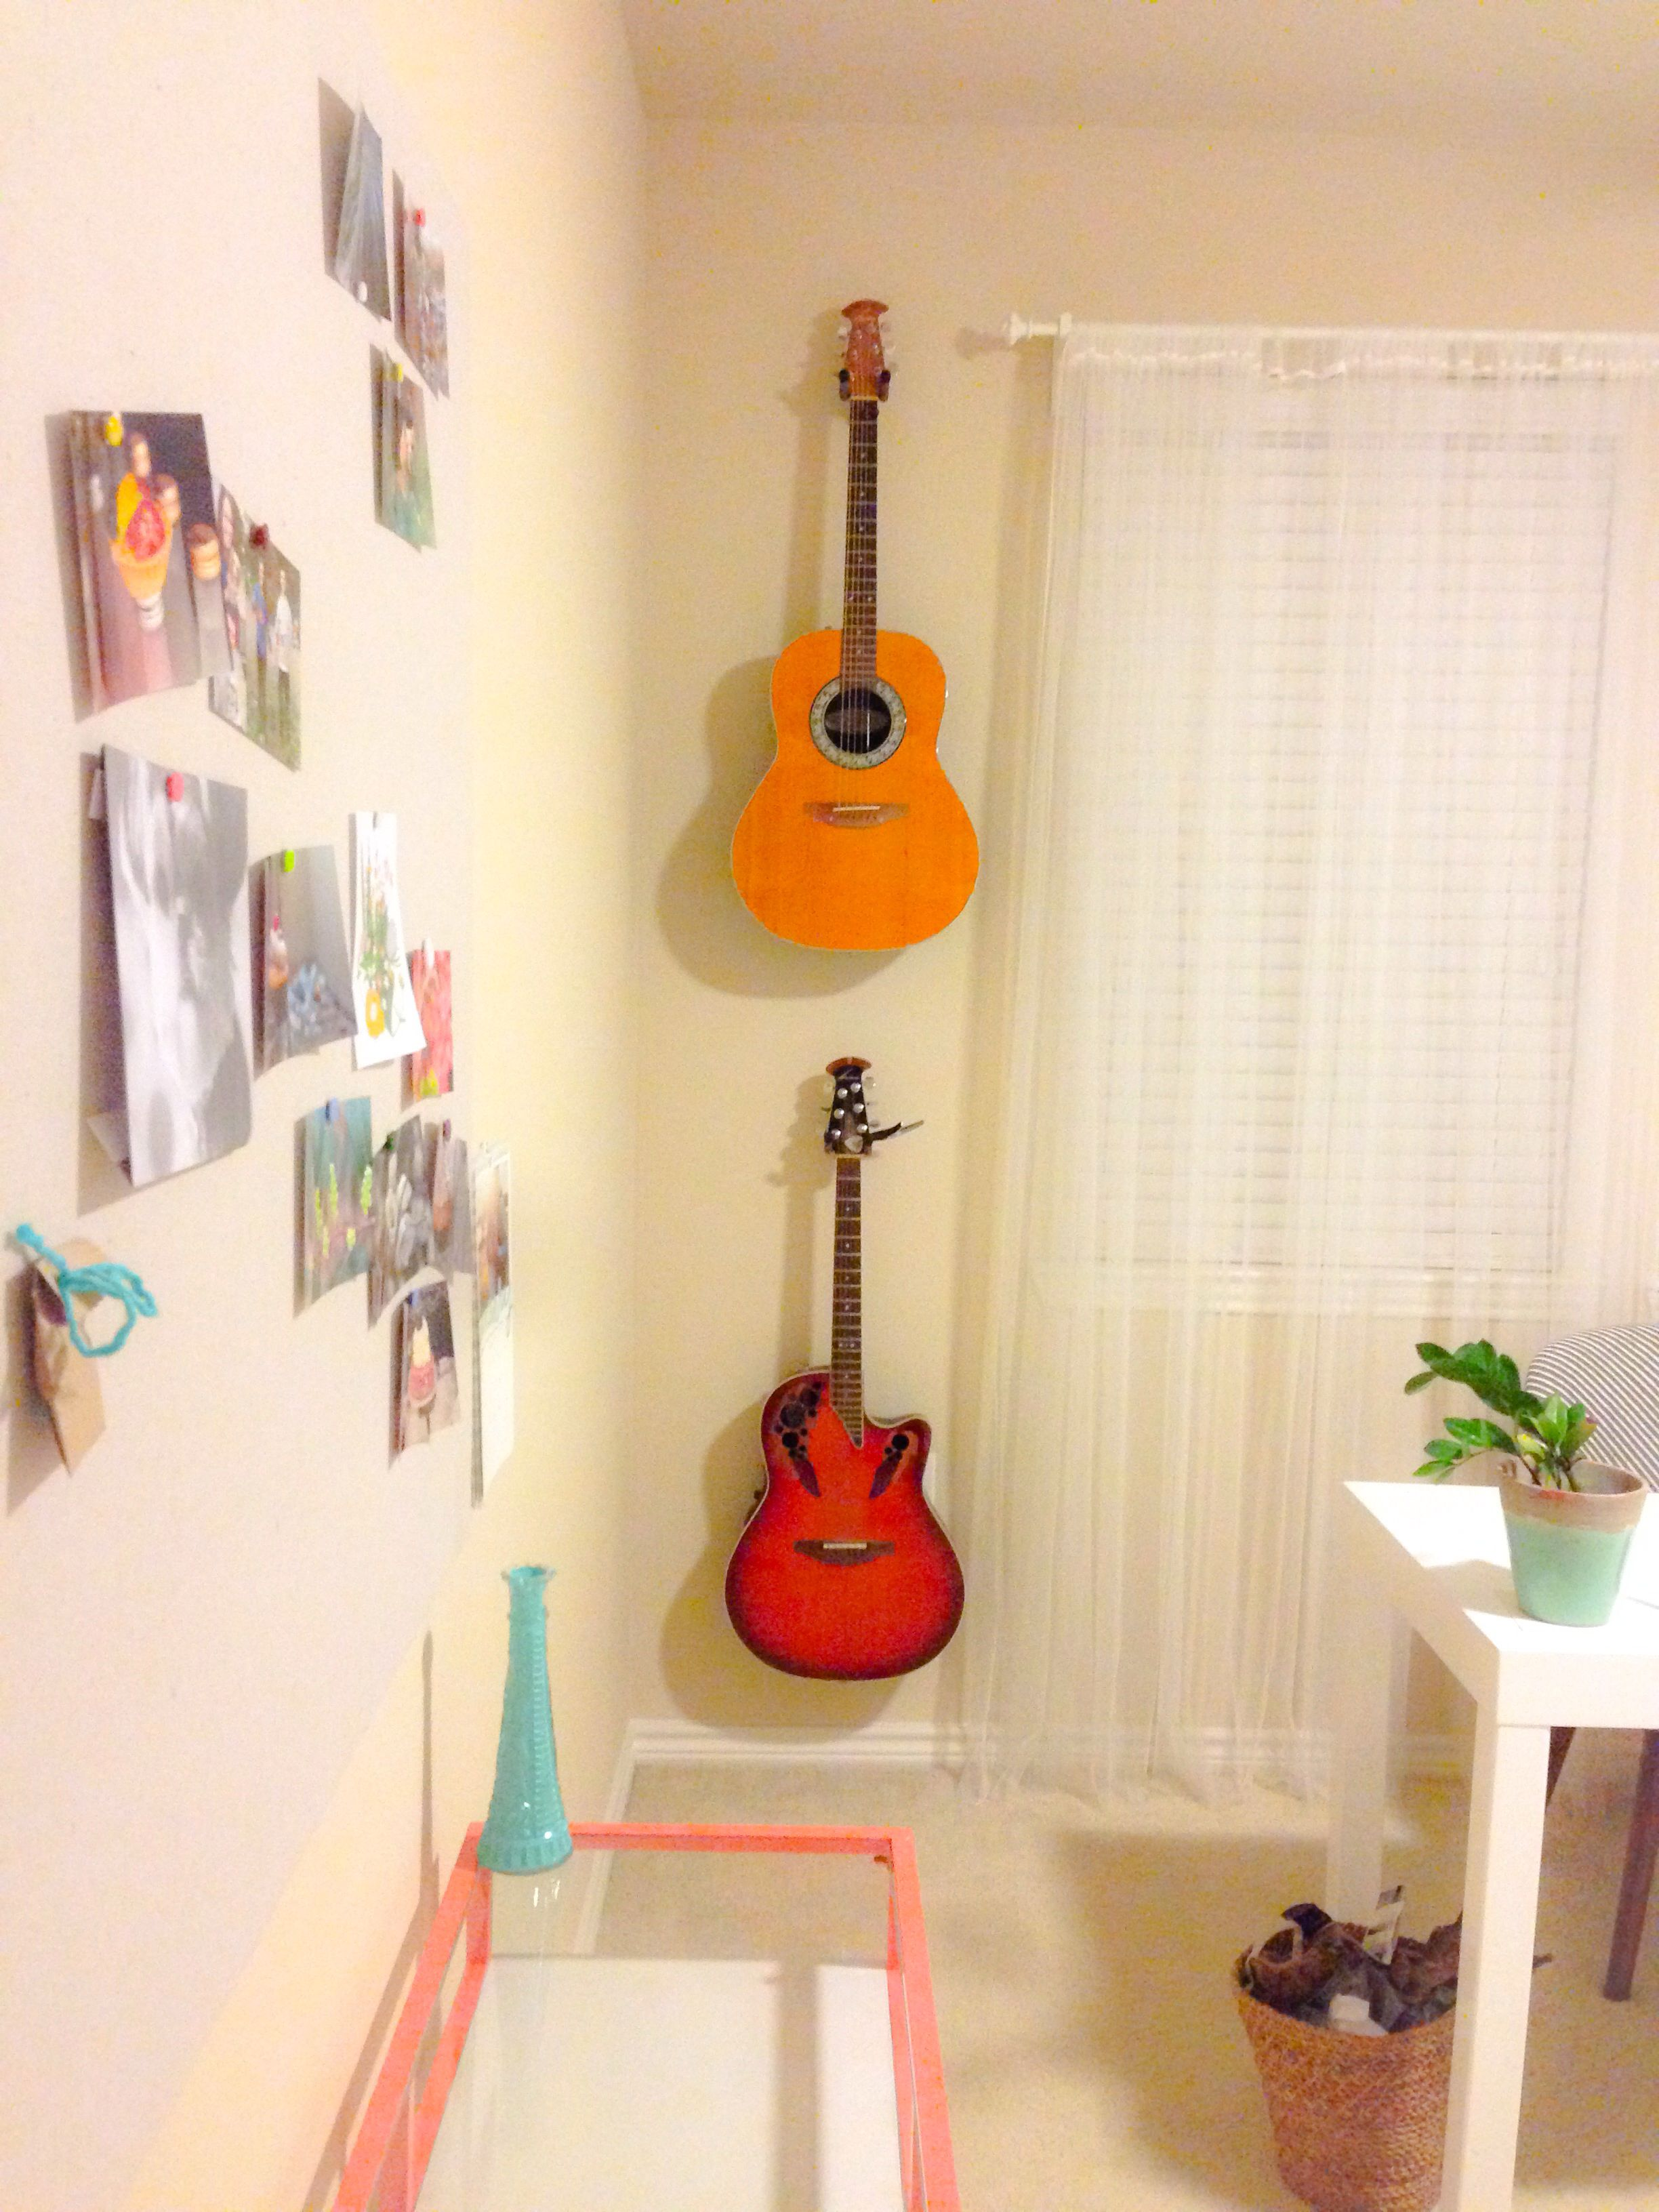 Hang guitars on the wall--viola! Art. #office #decor | Our room ...